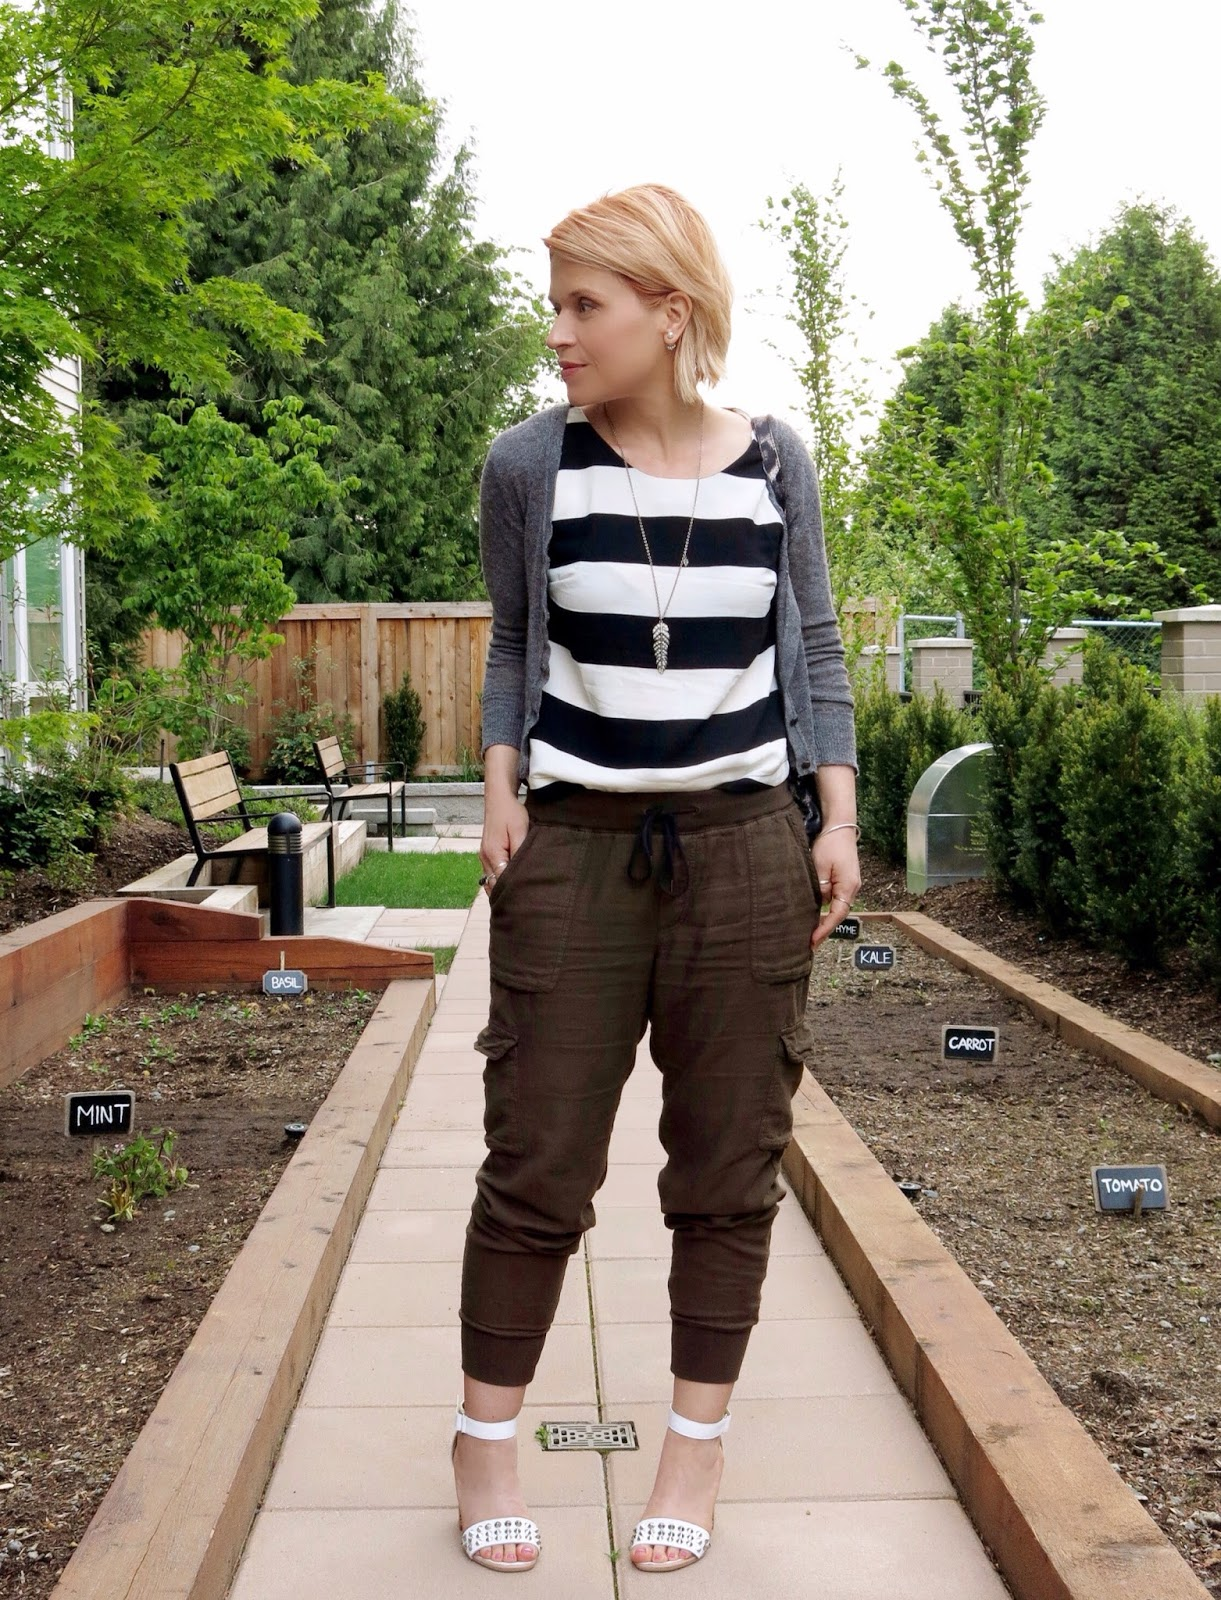 styling slouchy cargo pants with a striped tank top, shrunken cardigan, and studded ankle-strap sandals